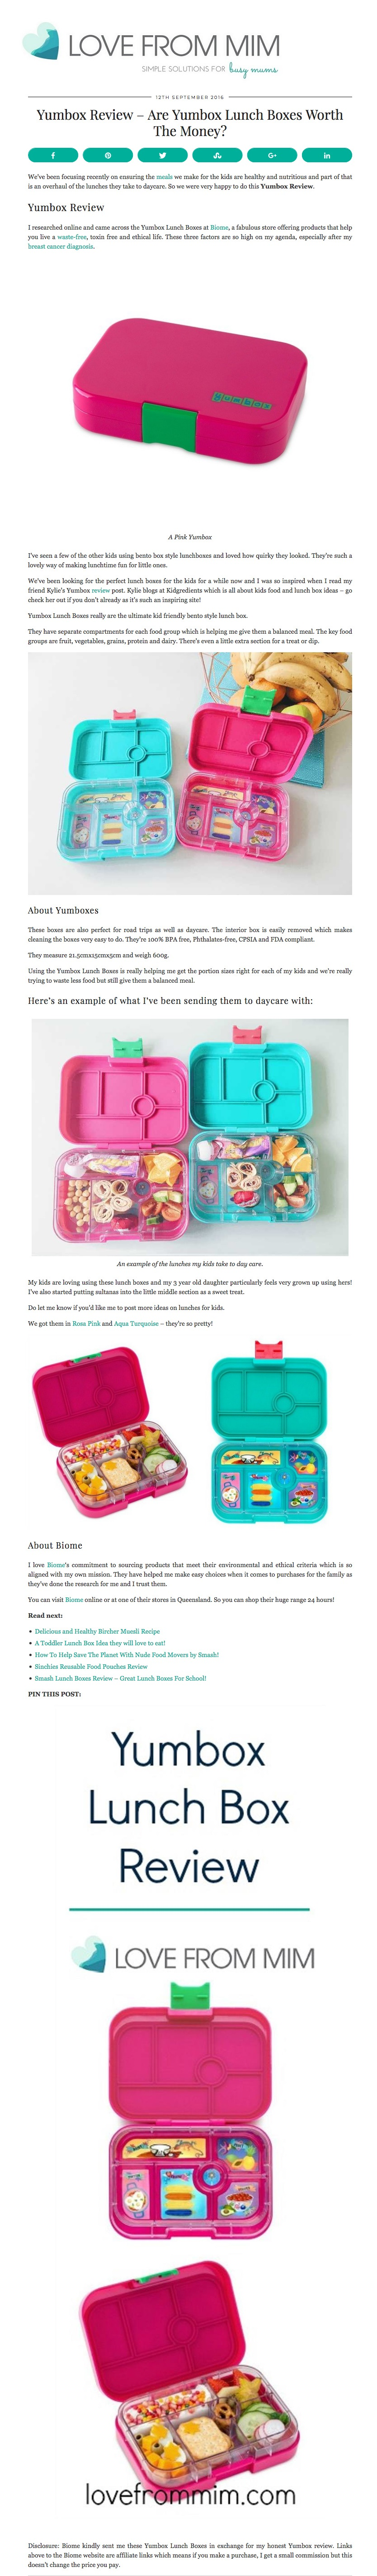 Yumbox Lunch Boxes from Biome